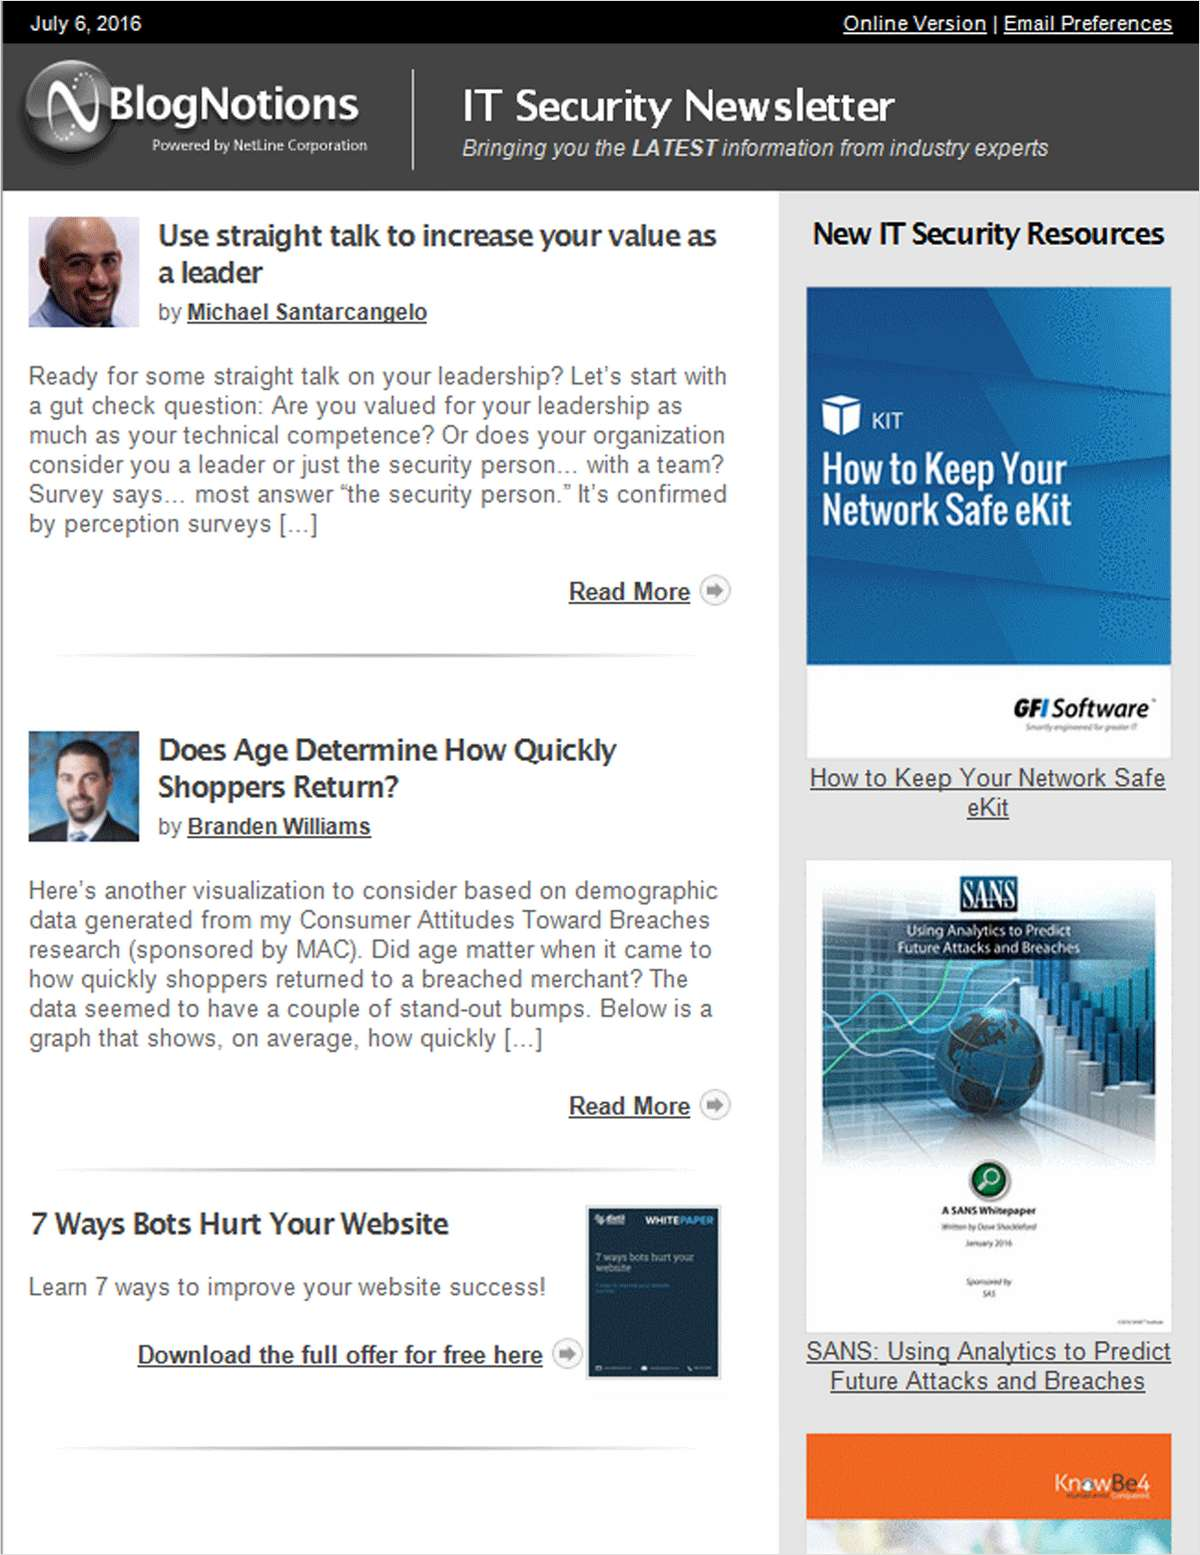 BlogNotions IT Security Newsletter: Monthly eNewsletter Featuring Blogs from Industry Experts